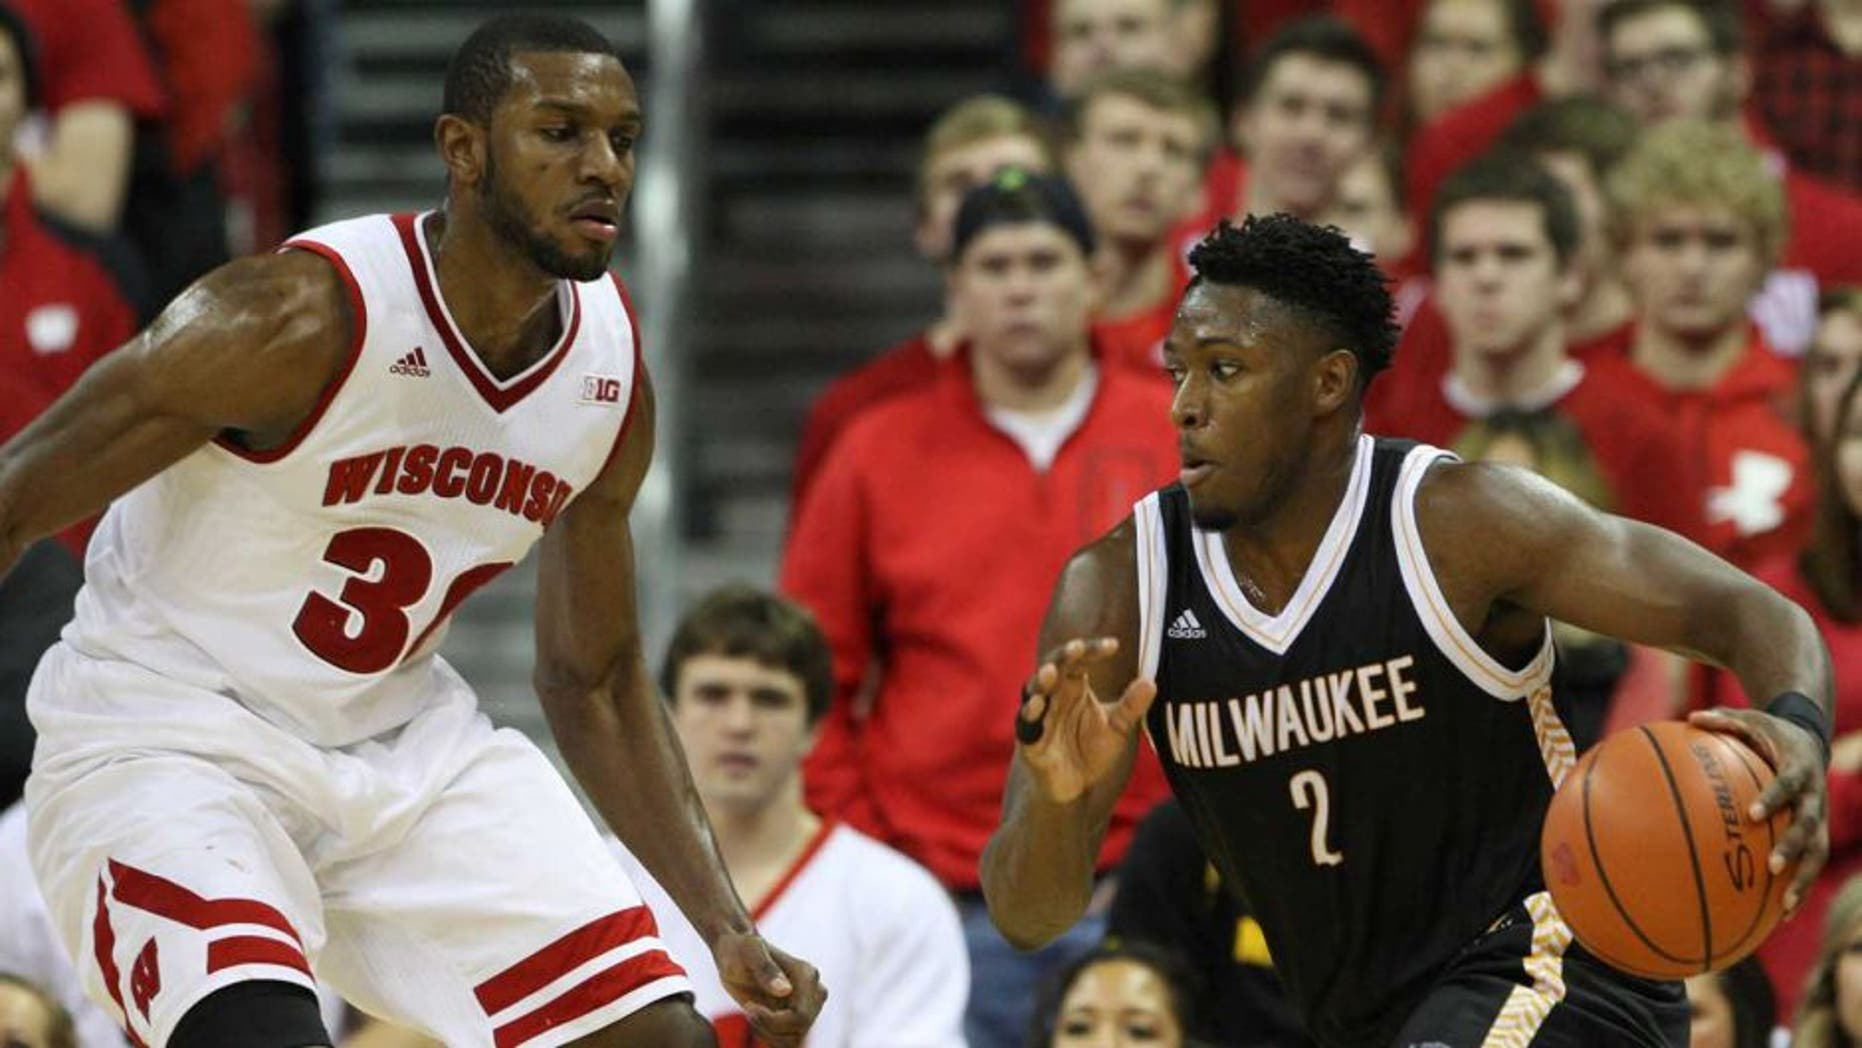 Dec 9, 2015; Madison, WI, USA; Wisconsin-Milwaukee Panthers guard Akeem Springs (2) drive the ball against Wisconsin Badgers forward Vitto Brown (30) at the Kohl Center. Wisconsin-Milwaukee defeated Wisconsin 68-67. Mandatory Credit: Mary Langenfeld-USA TODAY Sports